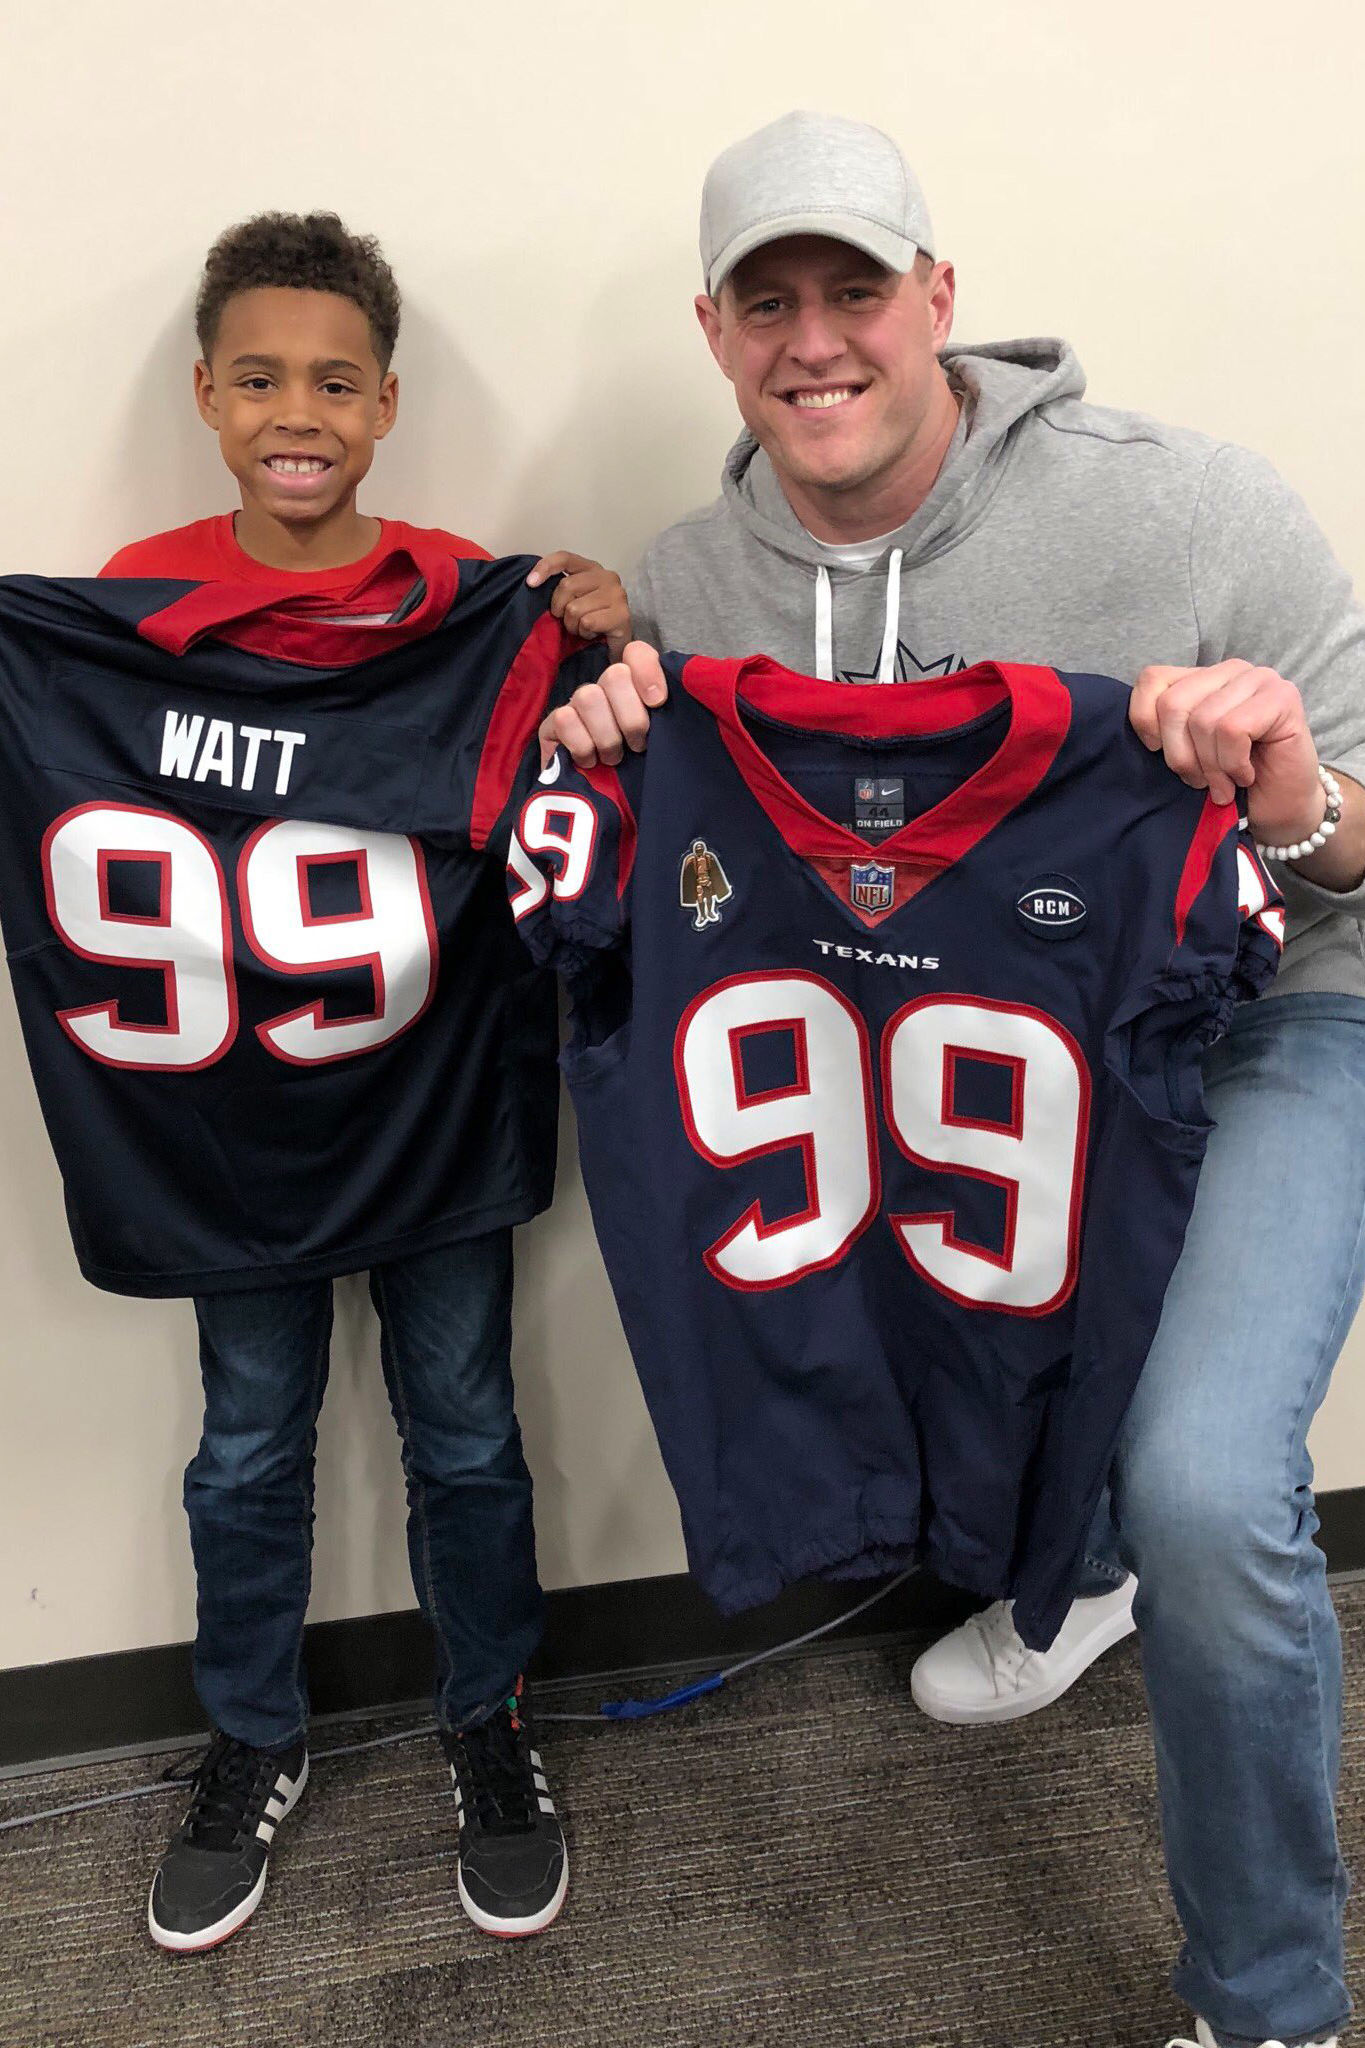 JJ Watt Follows Through on Promise to Give Young Fan His Jersey: 'I Have a New Friend'